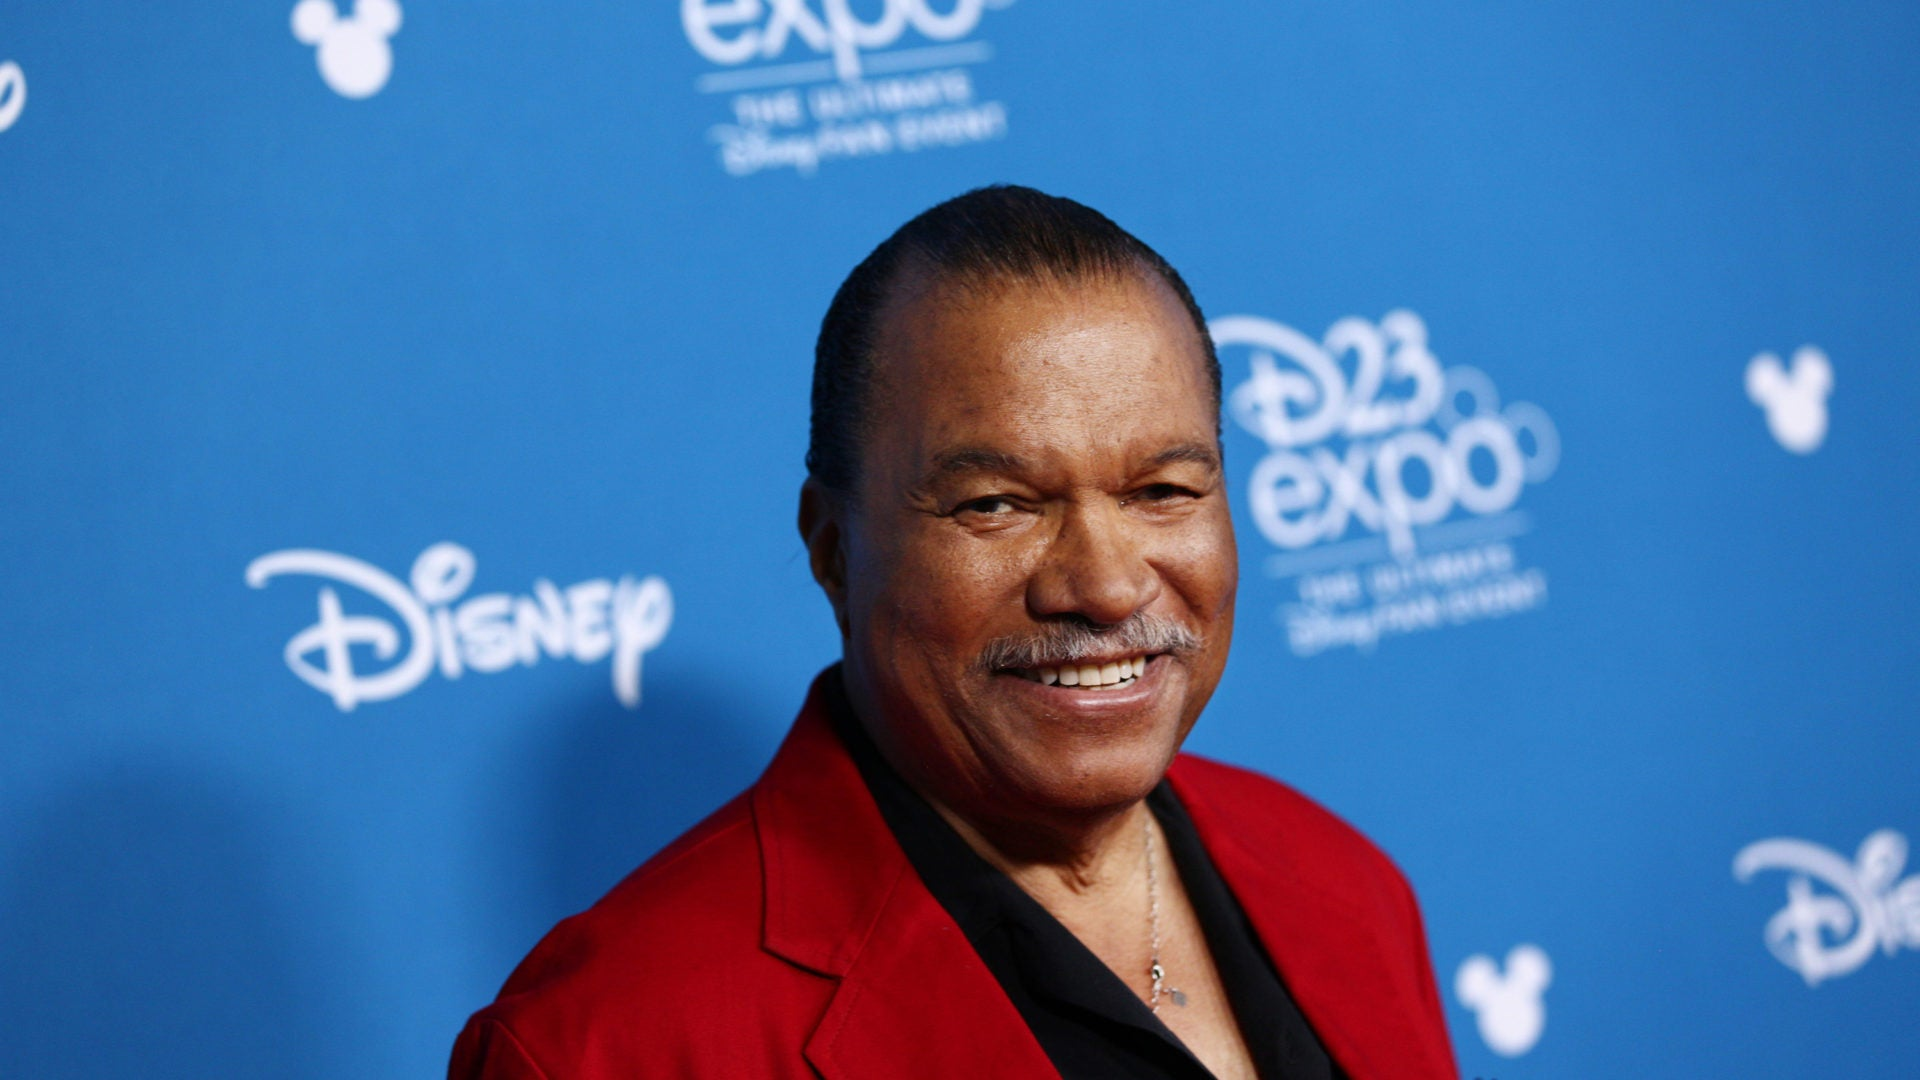 Billy Dee Williams Clarifies Comments About Gender Fluidity